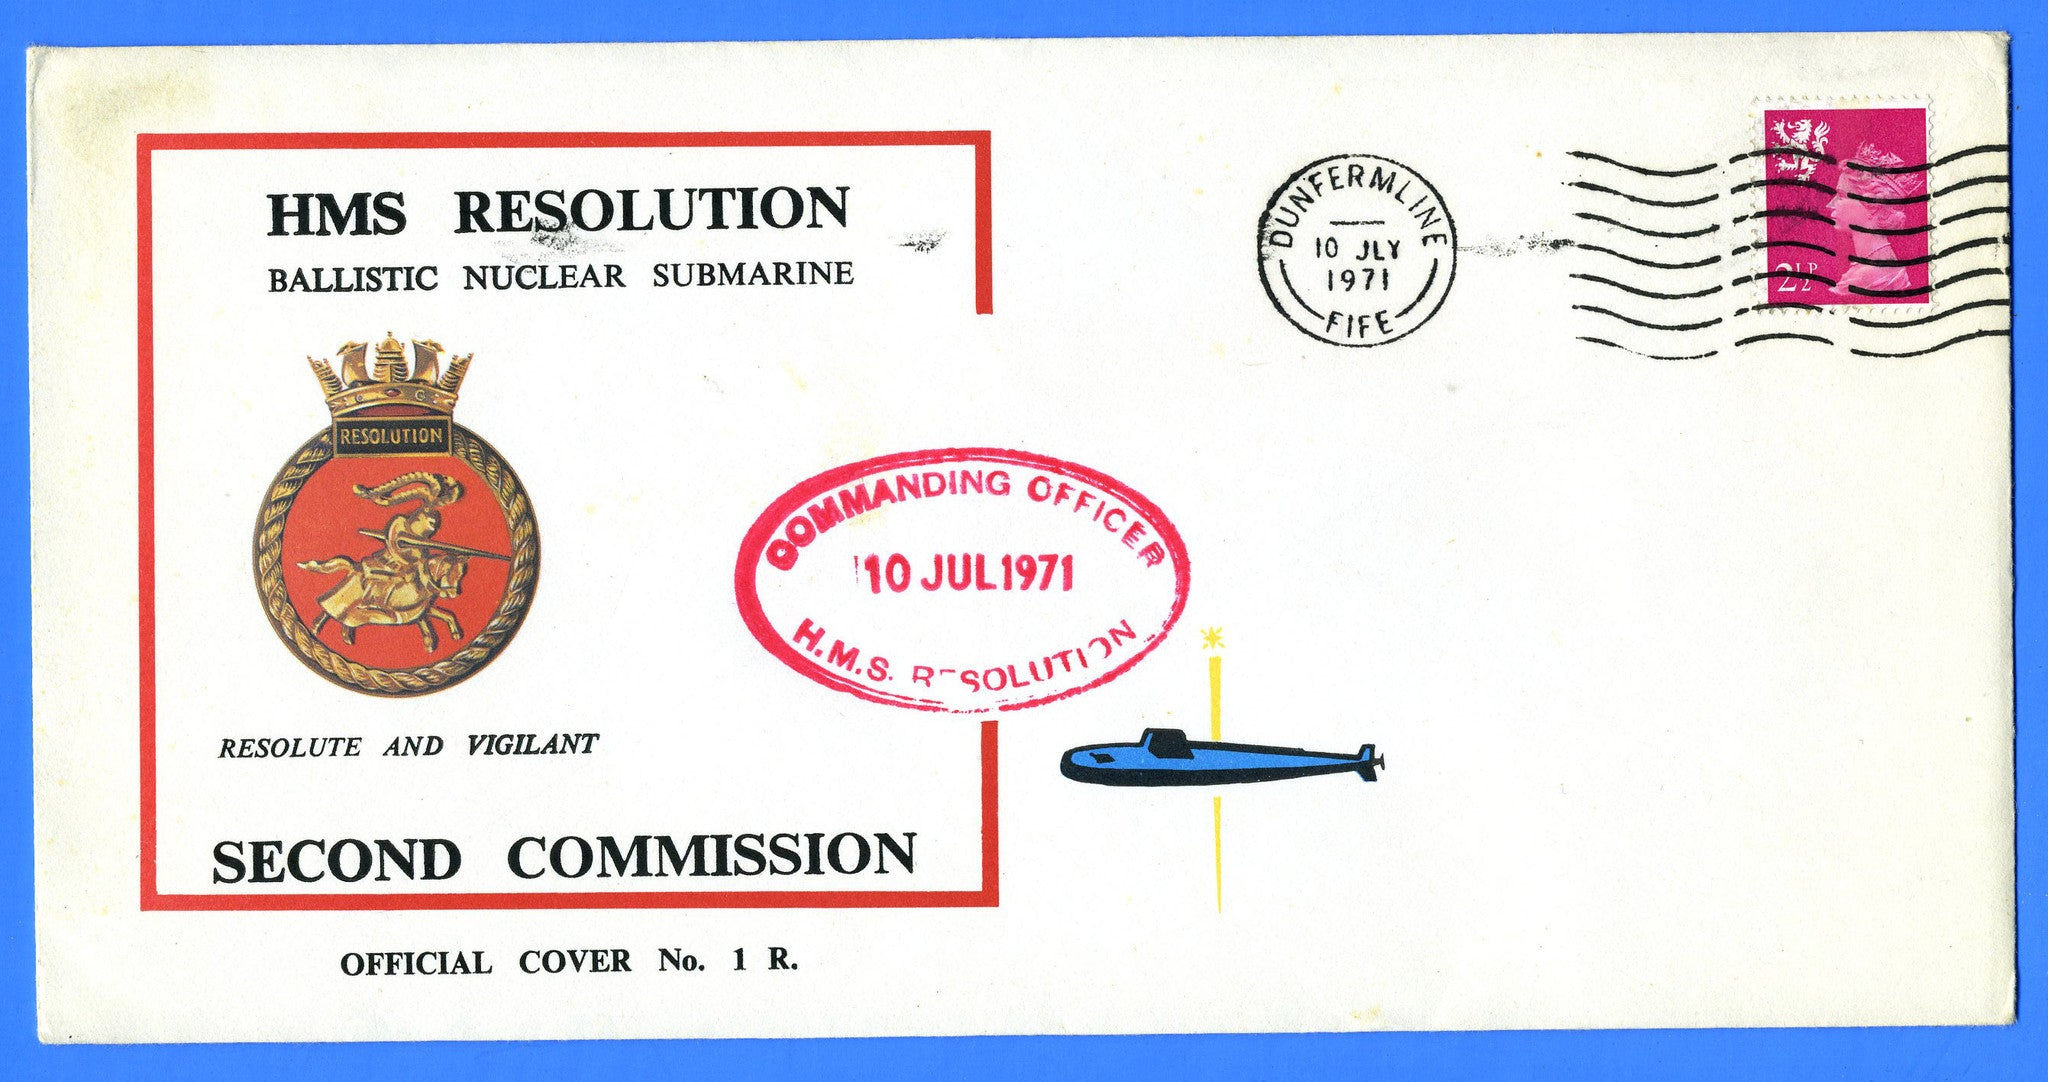 HMS Resolution Second Commission July 10, 1971